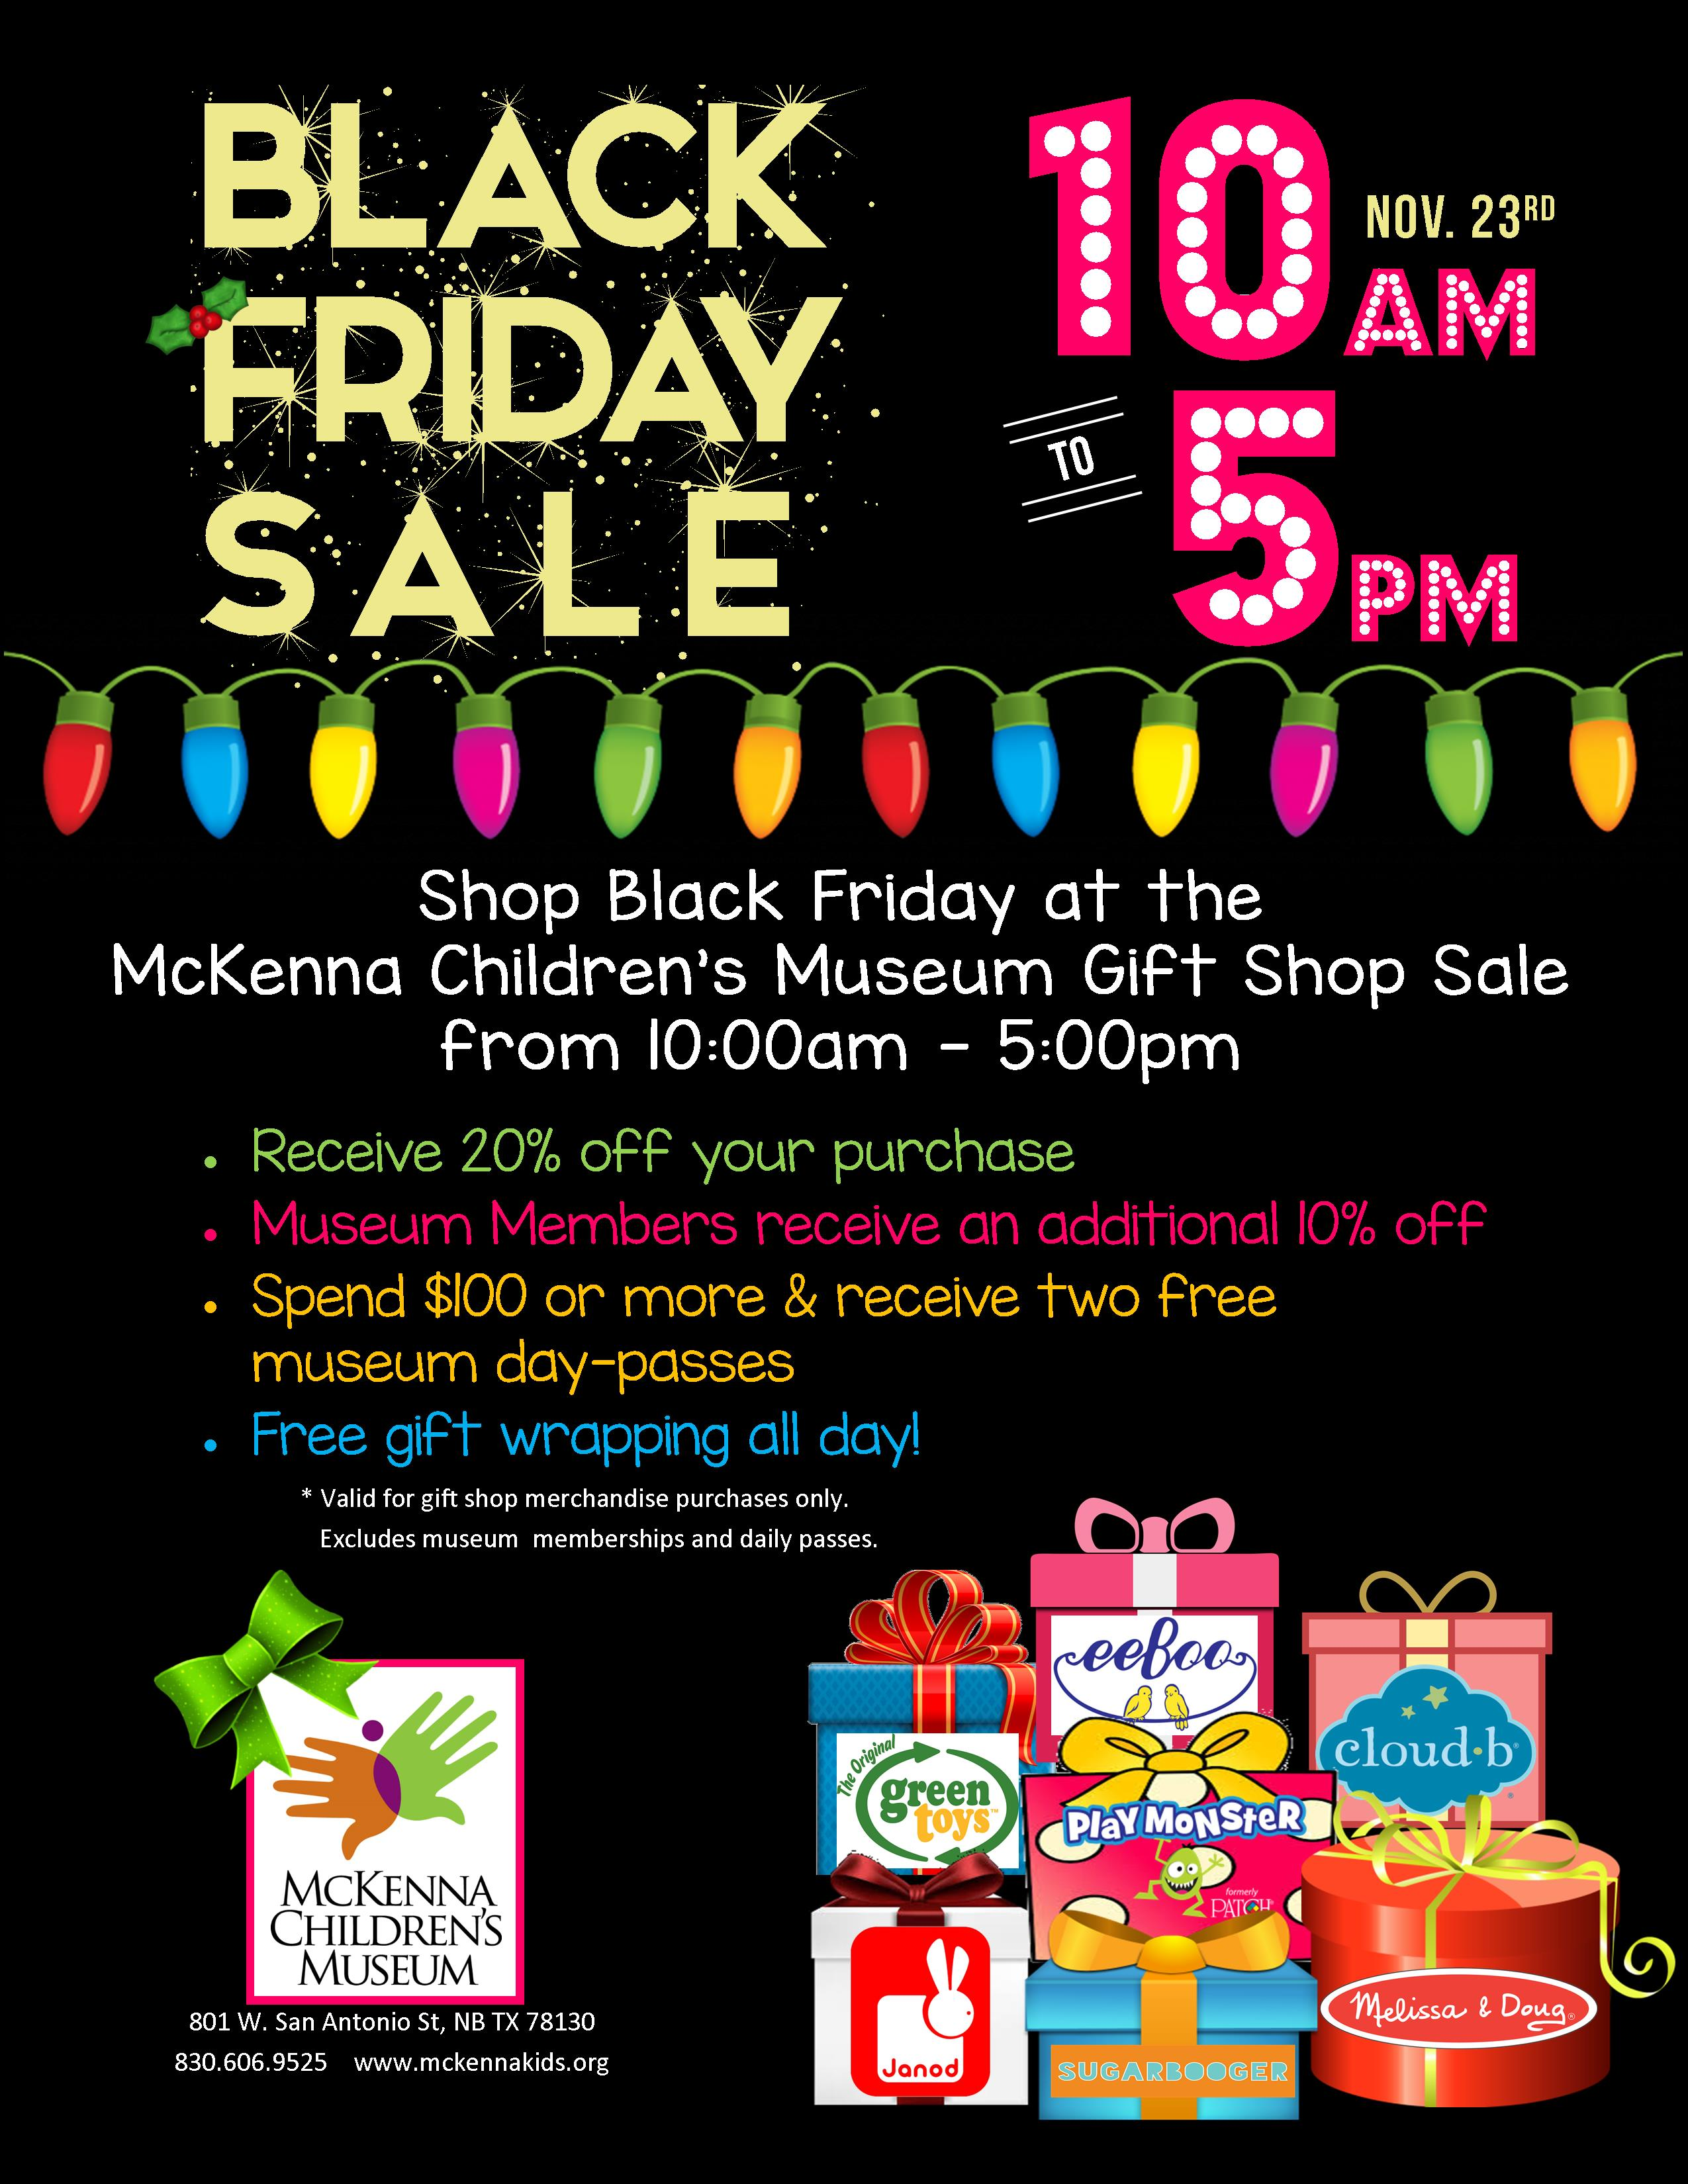 Black Friday Sale Mckenna Children S Museum Black Friday Sale New Braunfels Downtown